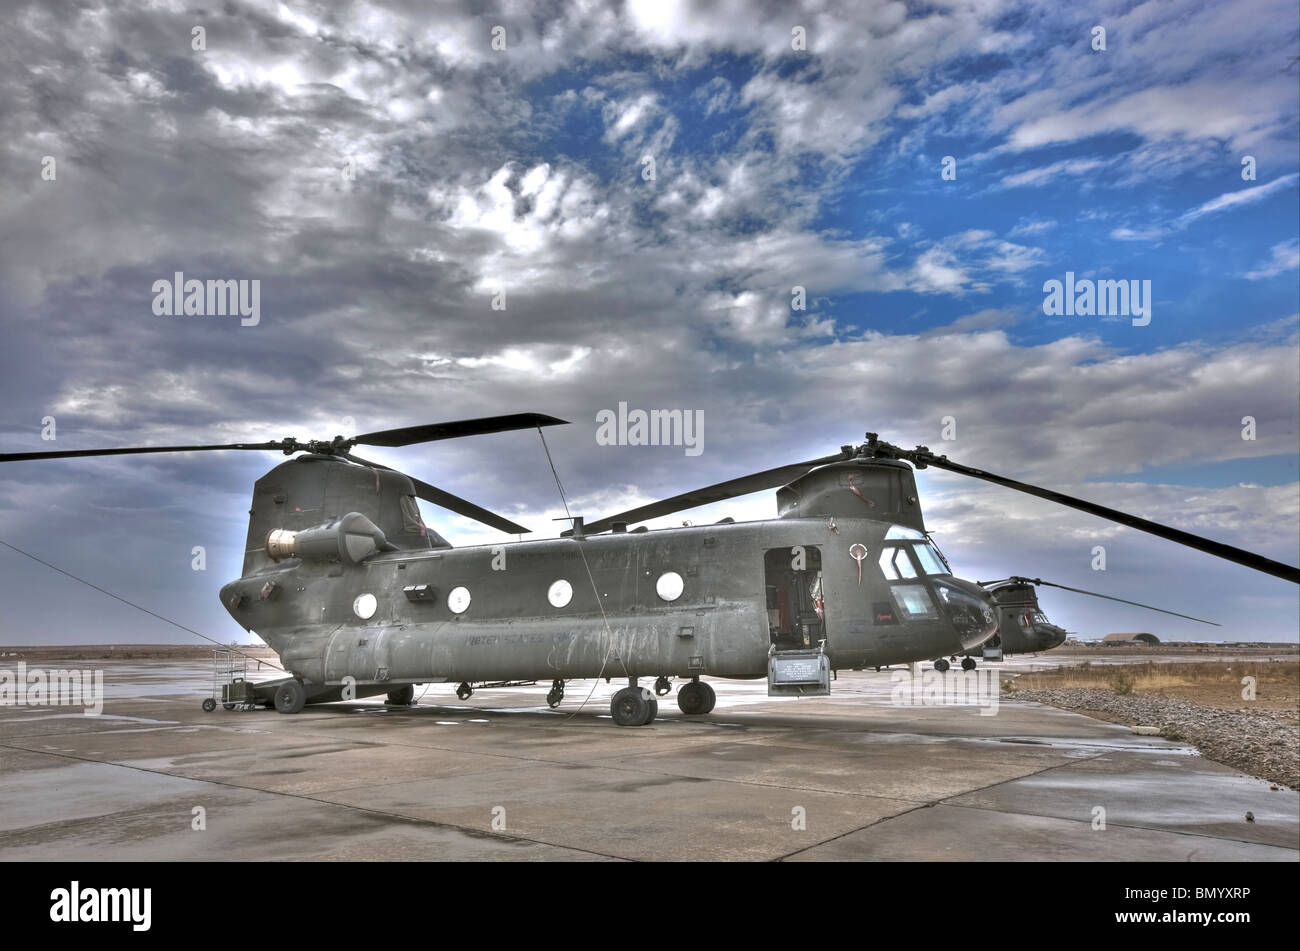 High dynamic range image of a CH-47 Chinook helicopter. - Stock Image